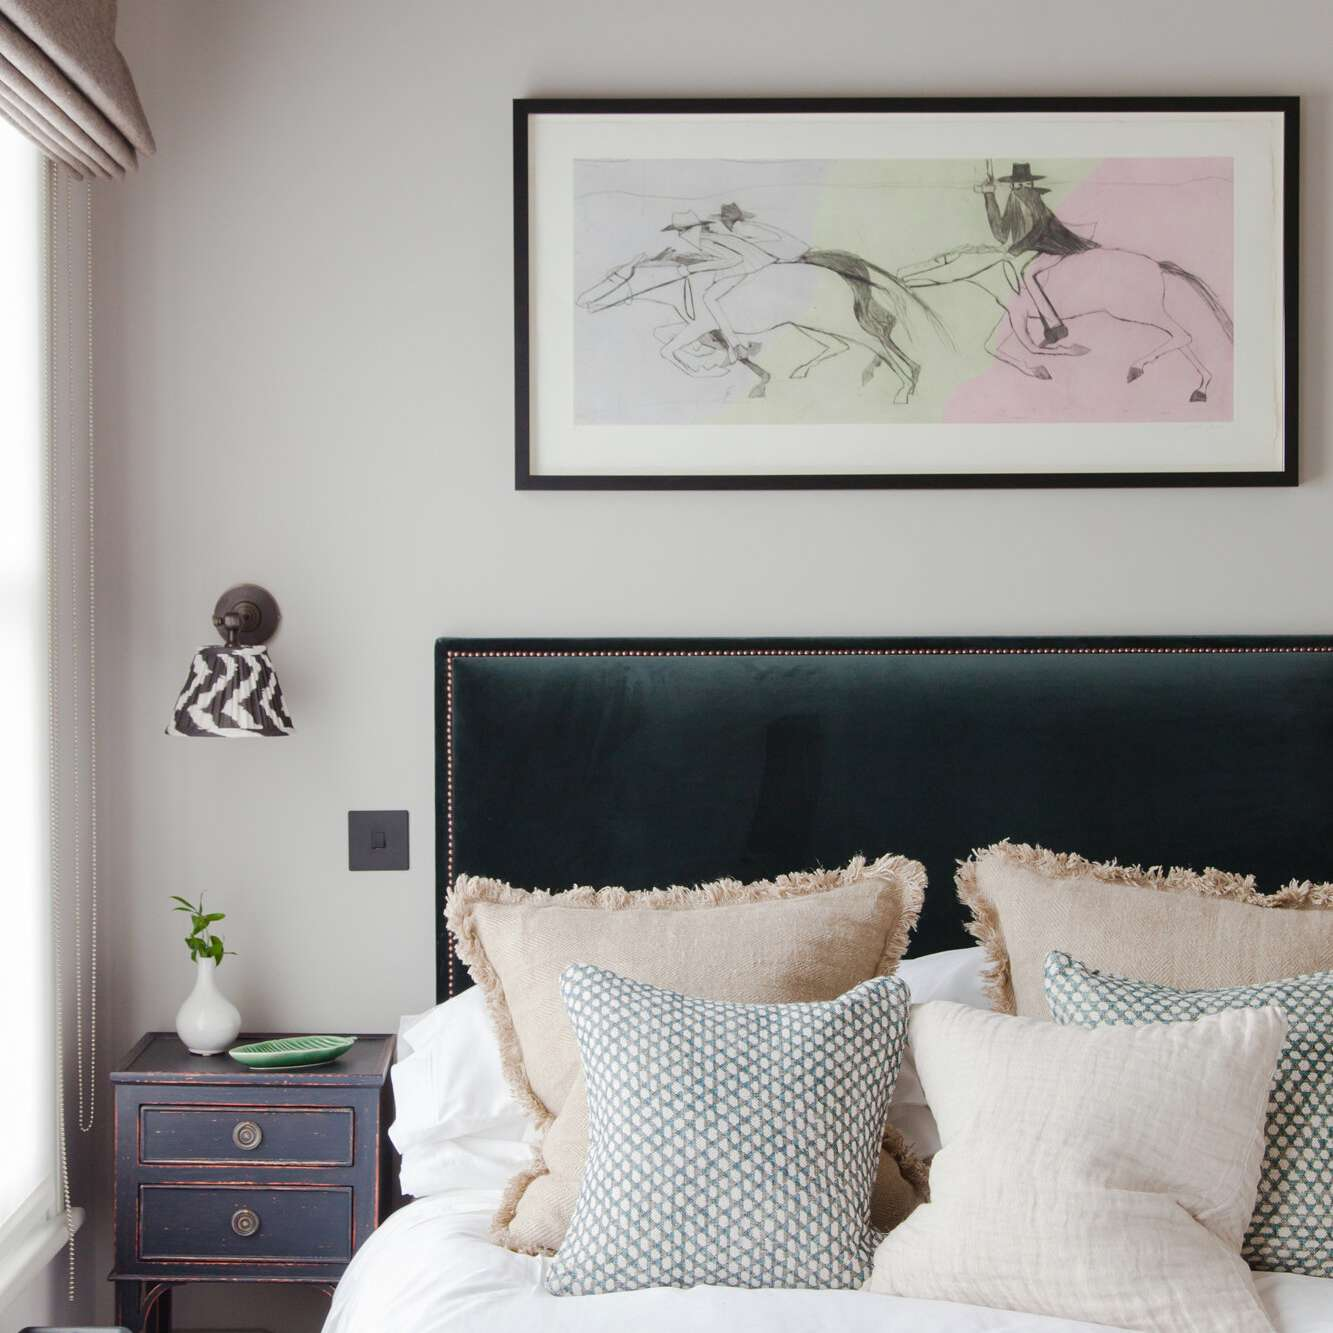 A bedroom with an indigo nightstand and a matching indigo blanket